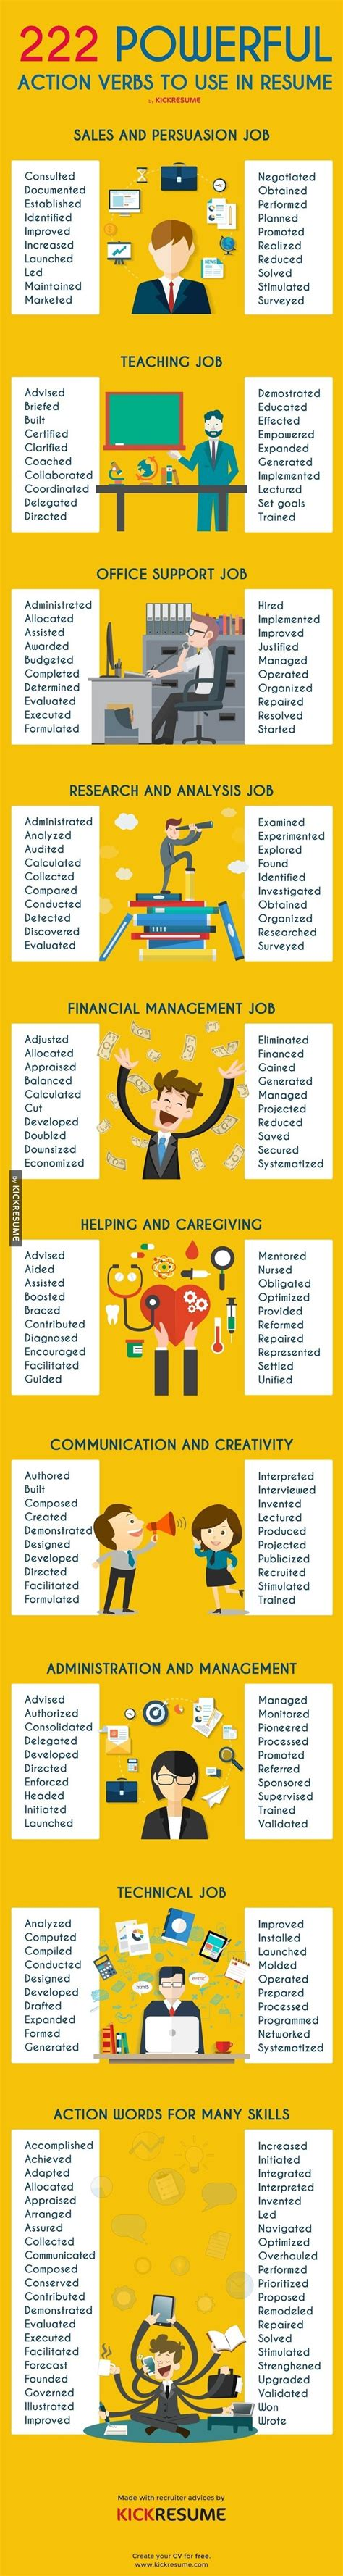 good action verbs to use on resume words for me active mes building